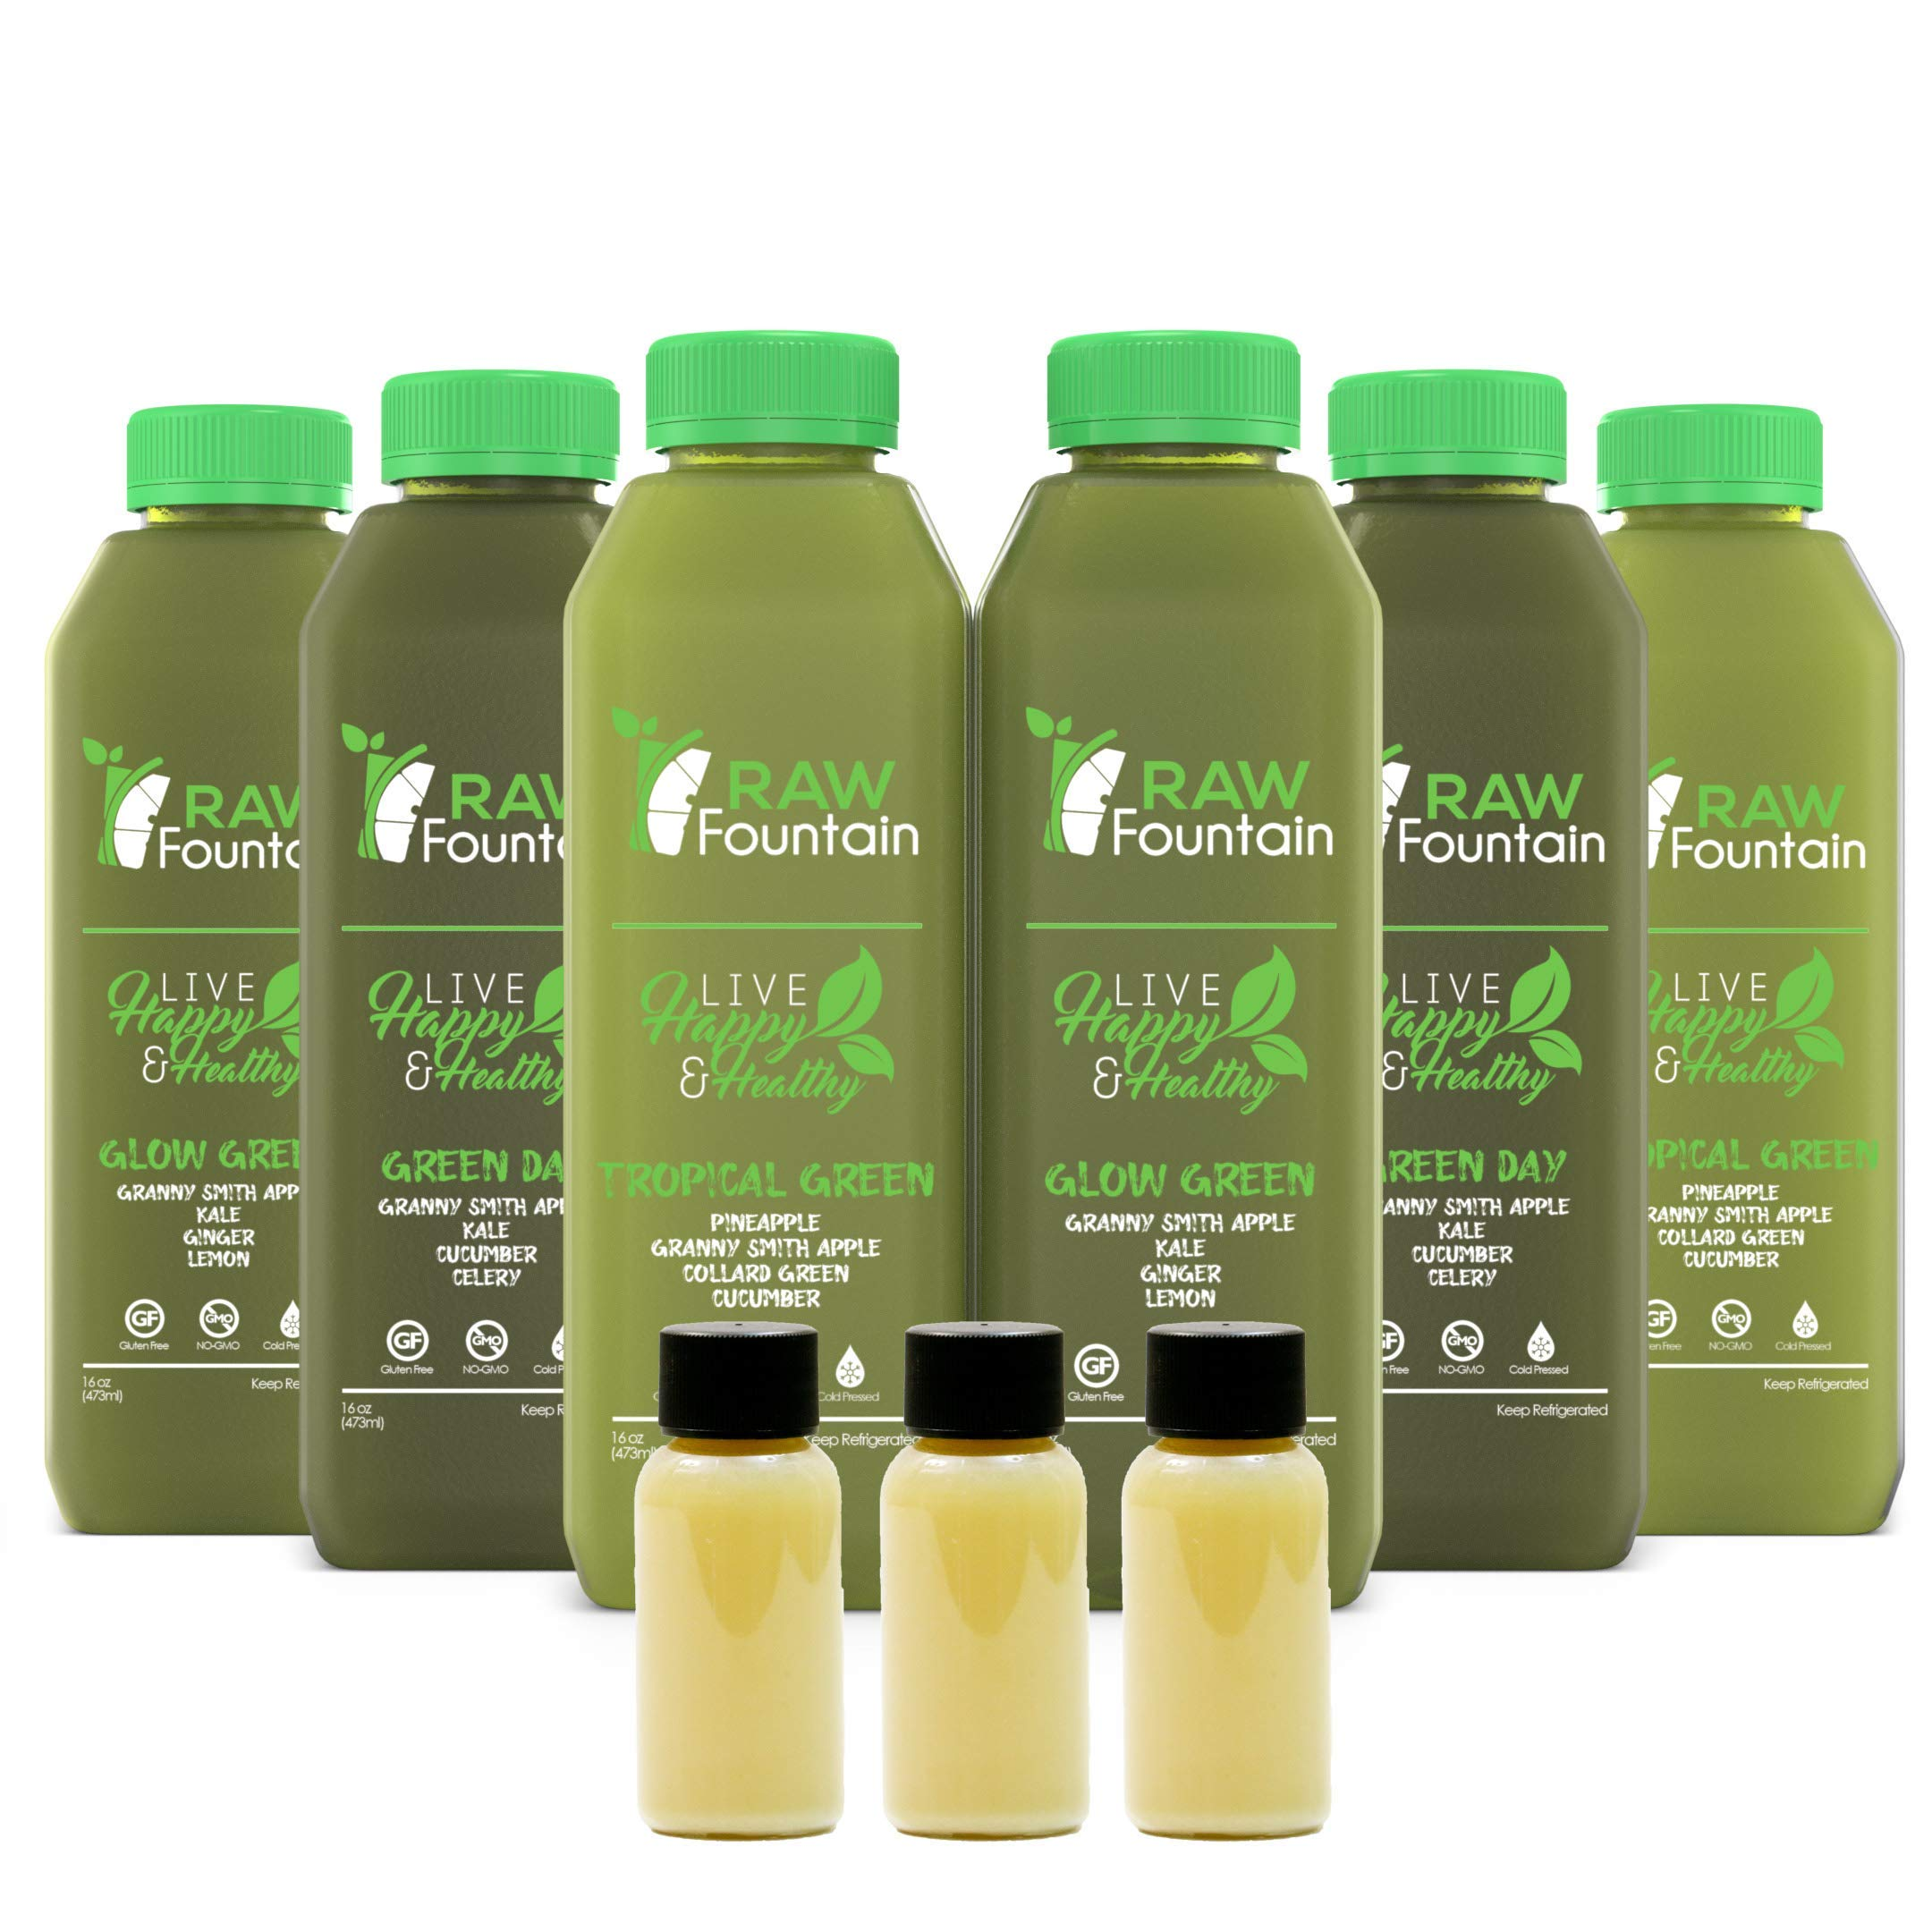 3 Day Juice Cleanse by Raw Fountain Juice - 100% Fresh Natural Raw Vegetable & Fruit Juices - Detox Your Body in a Healthy & Tasty Way! - 18 Bottles (16 fl oz) + 3 Bonus Ginger Shots (3 Day) by Raw Fountain